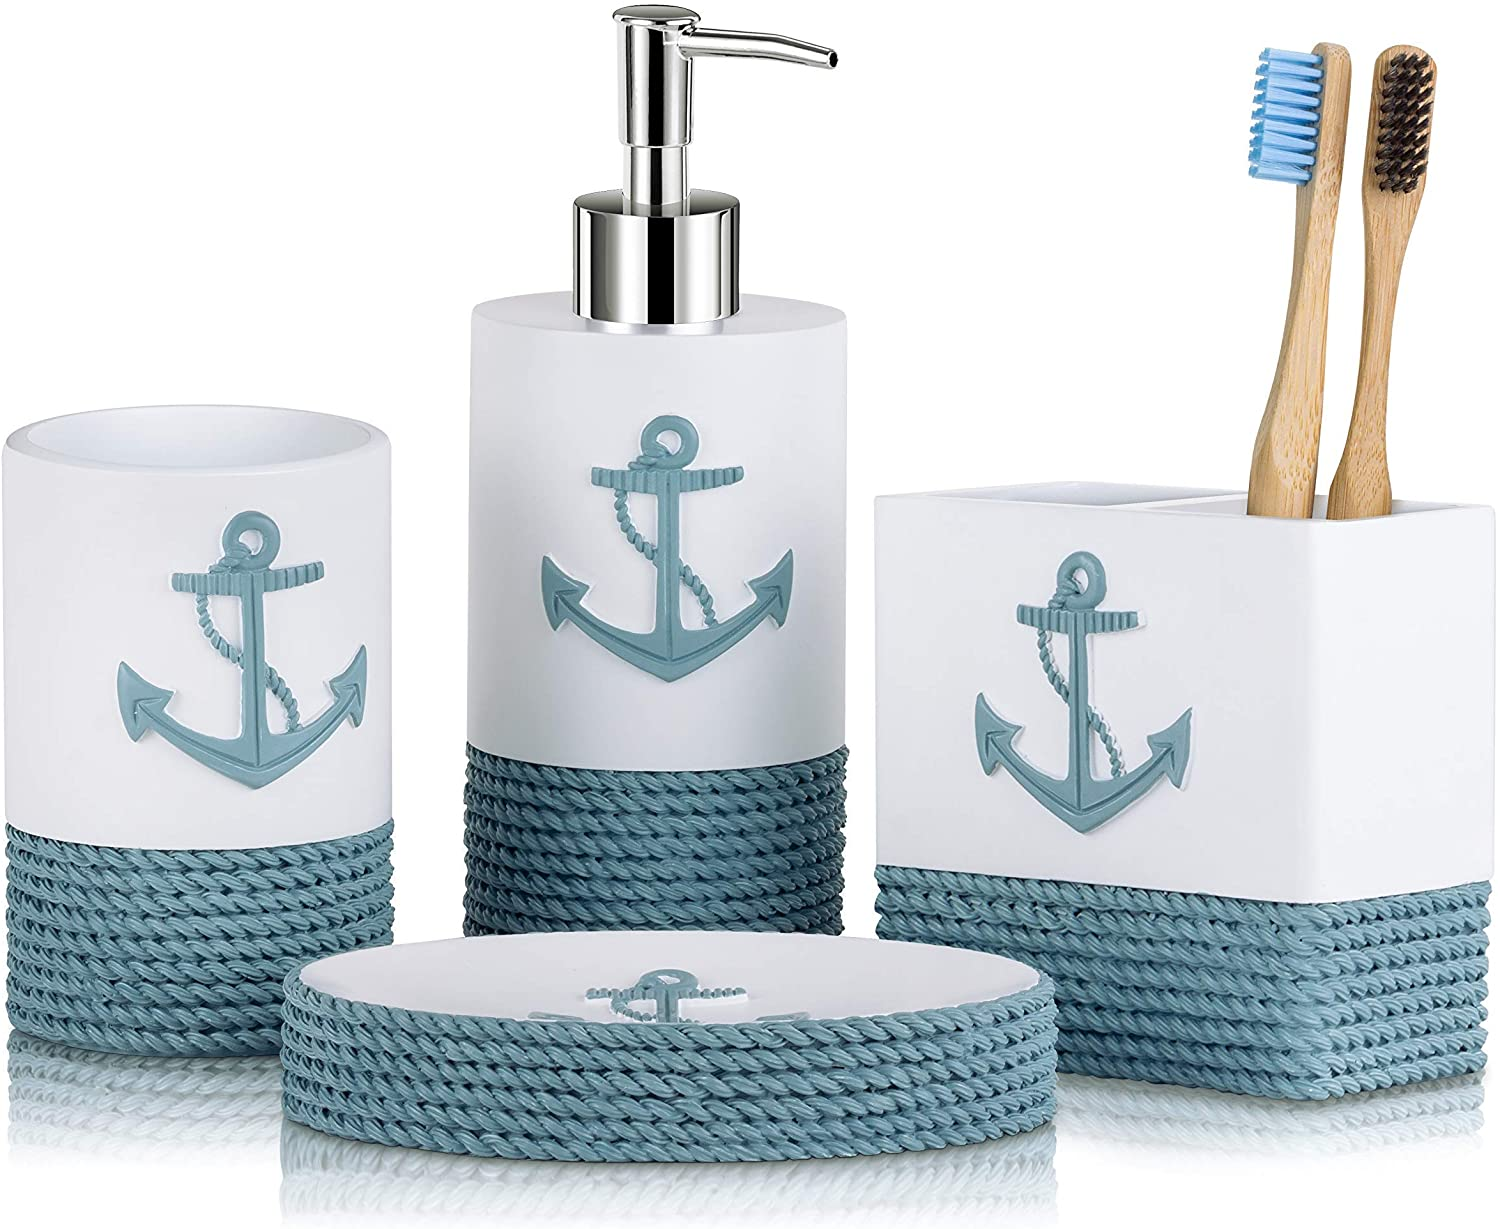 TideAndTales Nautical Bathroom Decor 4 Piece Bathroom Accessories Set | Rope and Anchor Bathroom Decor with Ocean and Sea Theme | Coastal Bathroom Soap Dispenser Set | Beach Bathroom Decor